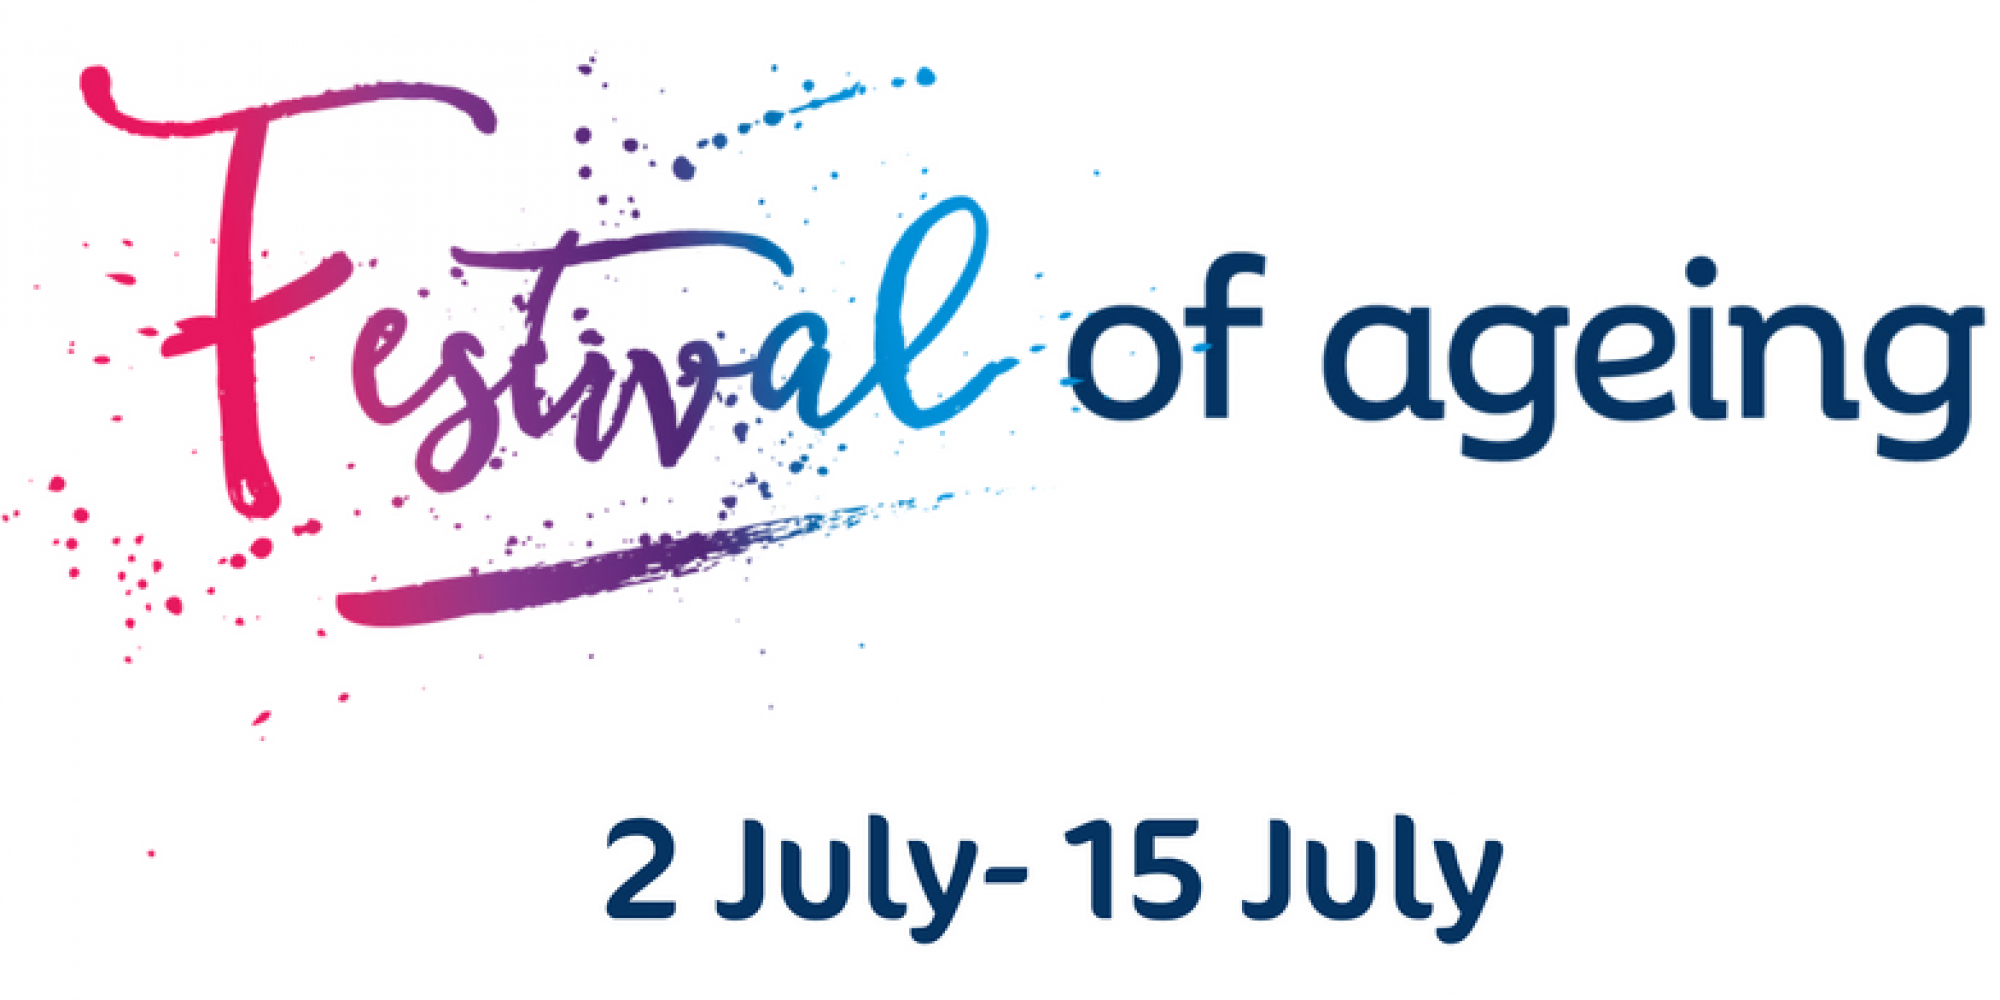 Festival of Ageing